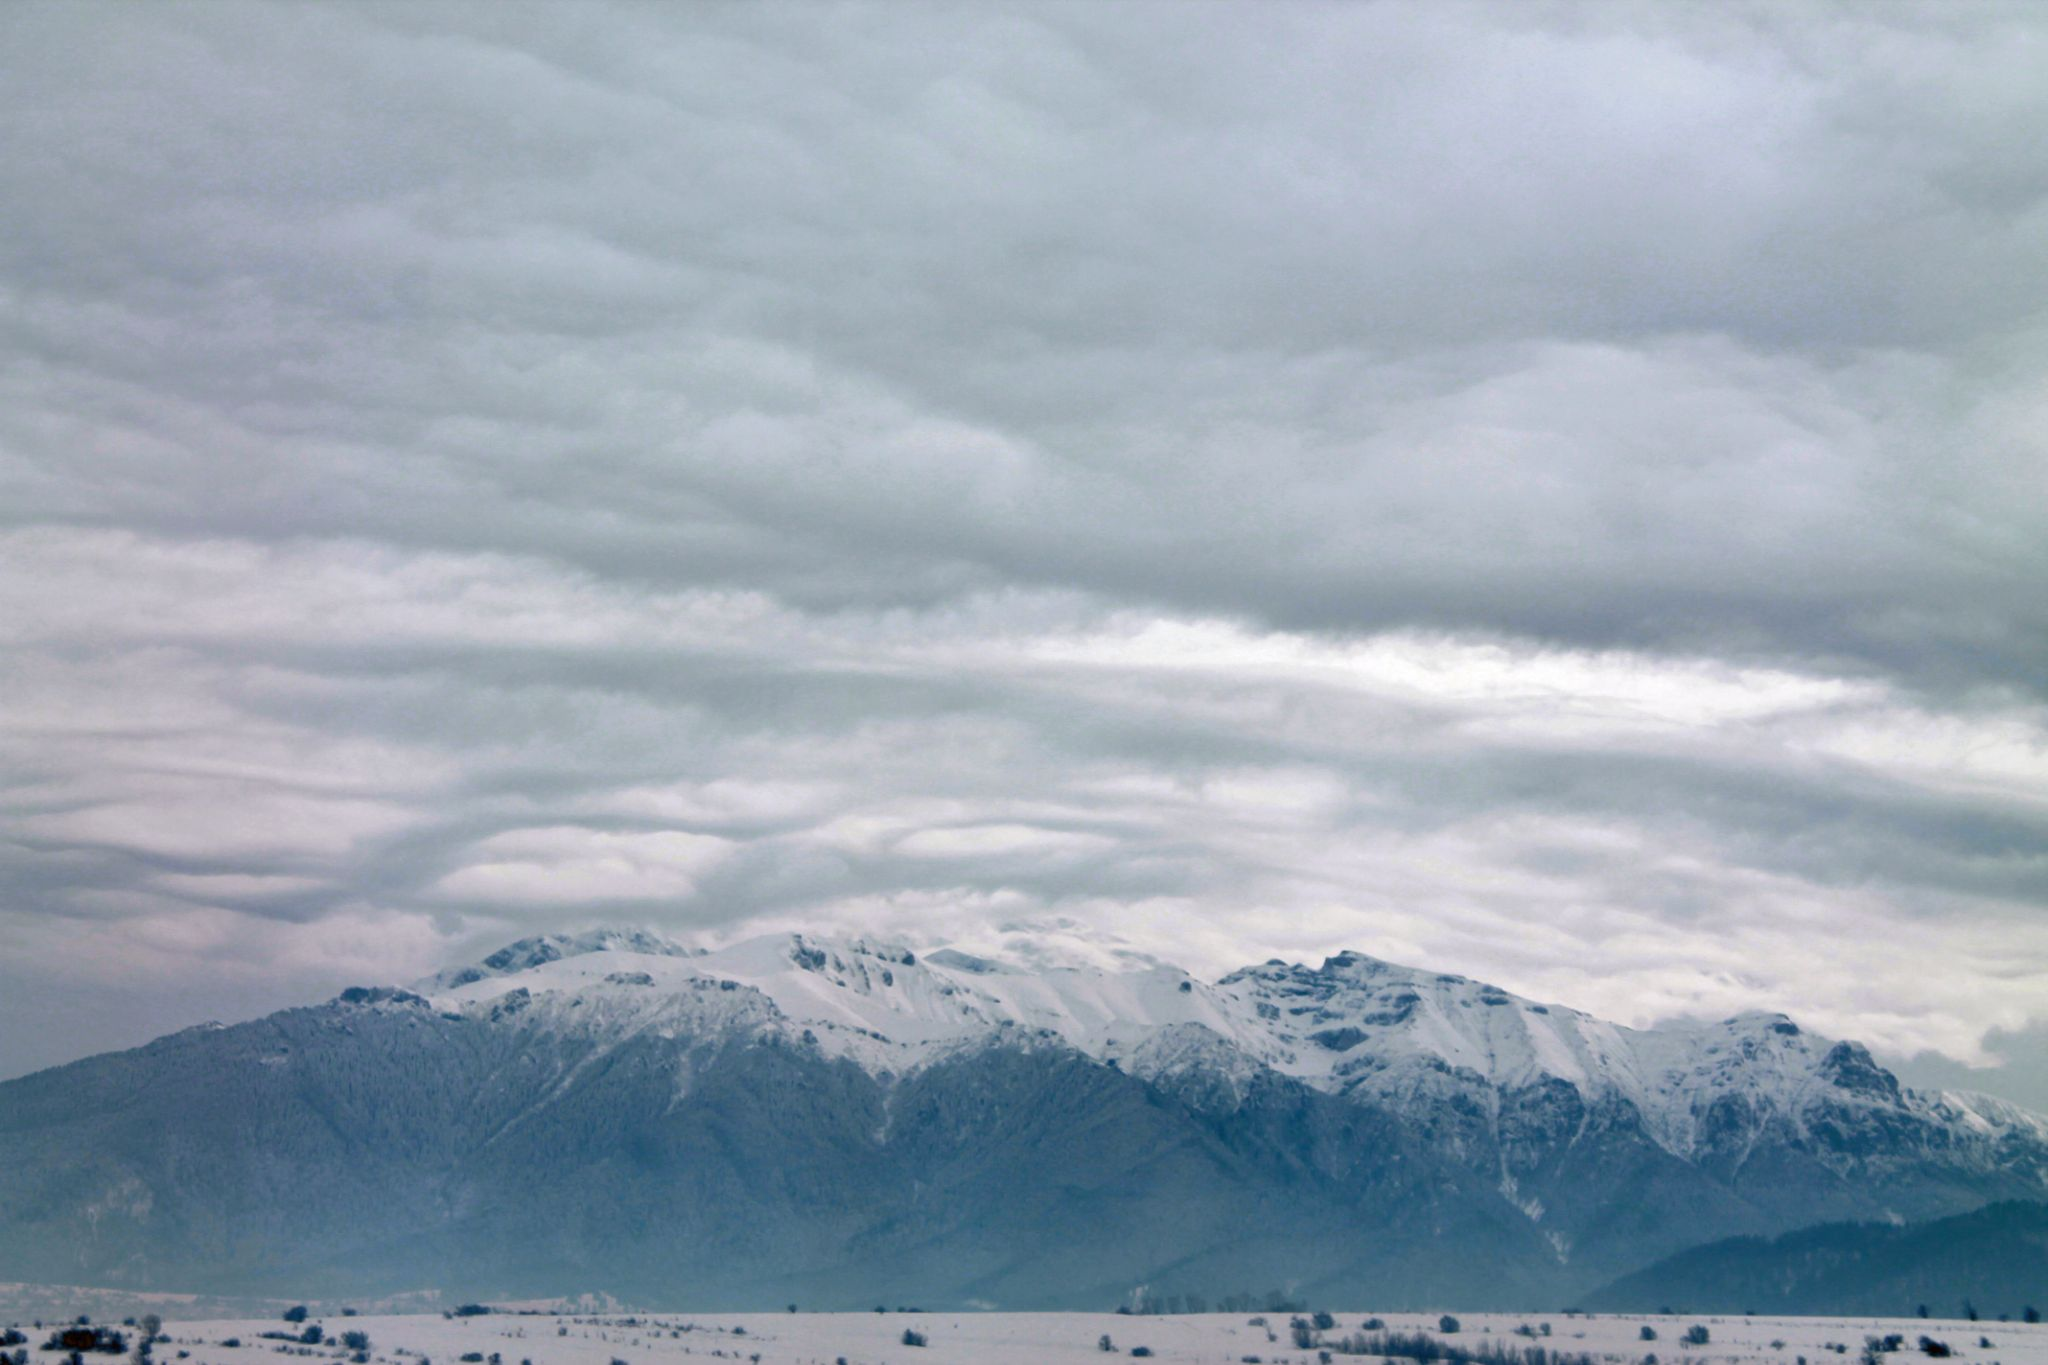 Snow over the mountains by gabi.striblea